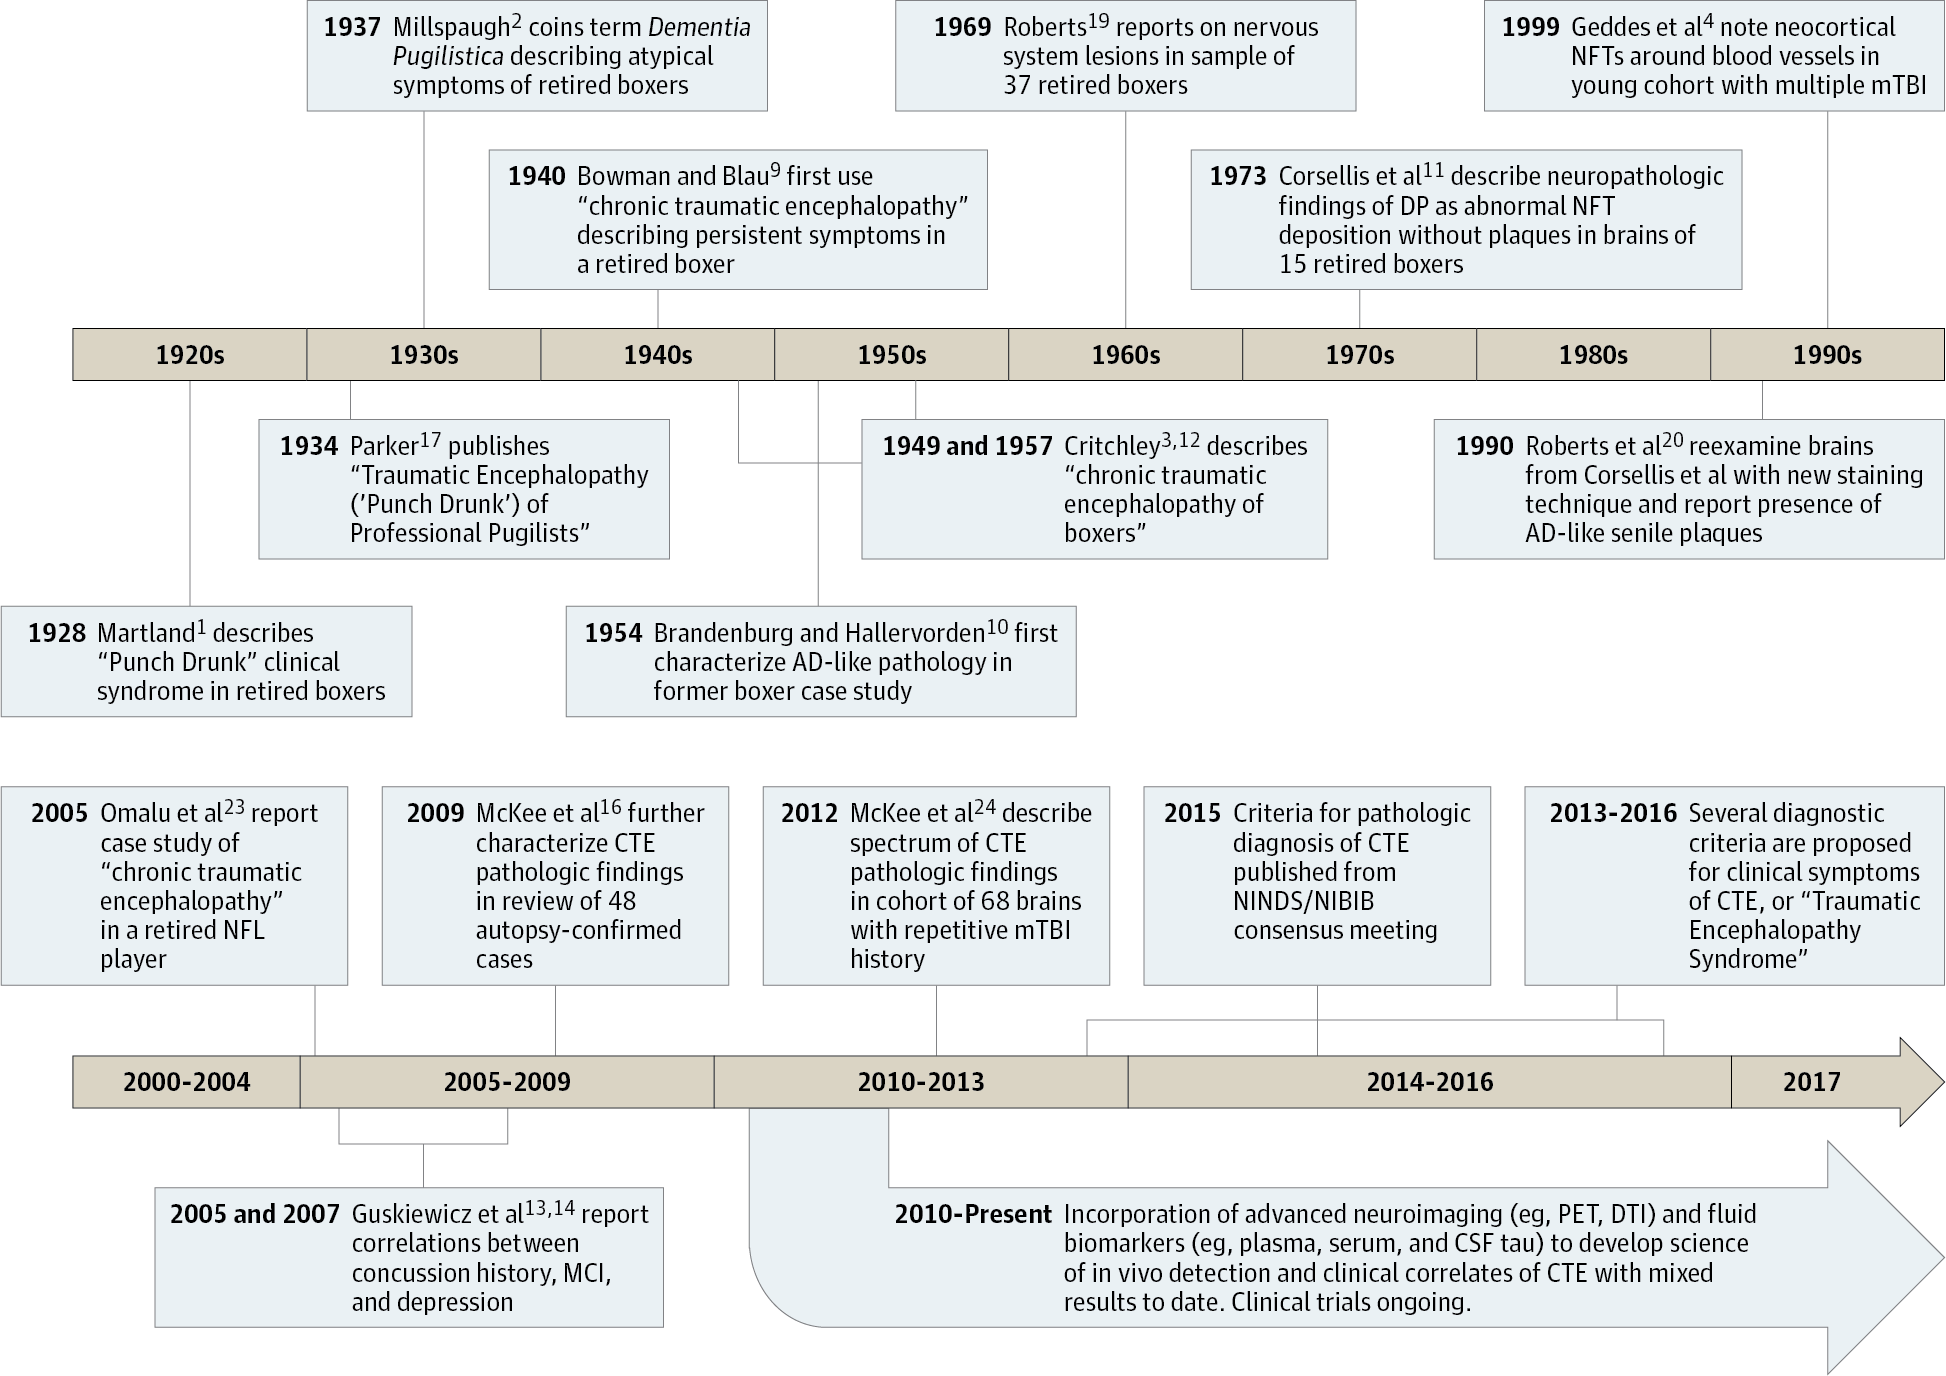 Research Gaps And Controversies In Chronic Traumatic Encephalopathy